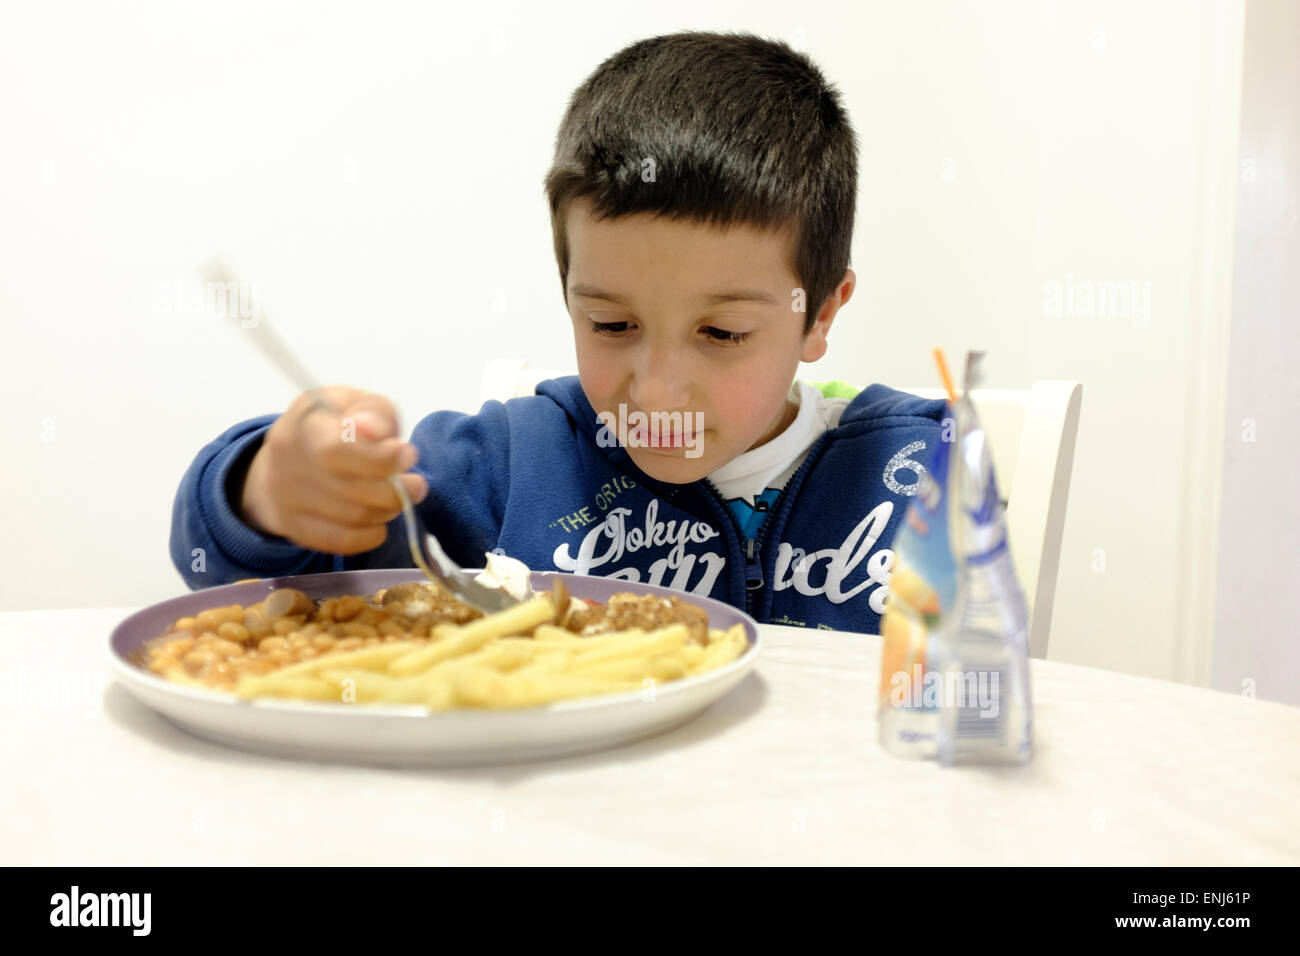 Child eating  fry-up meal - Stock Image